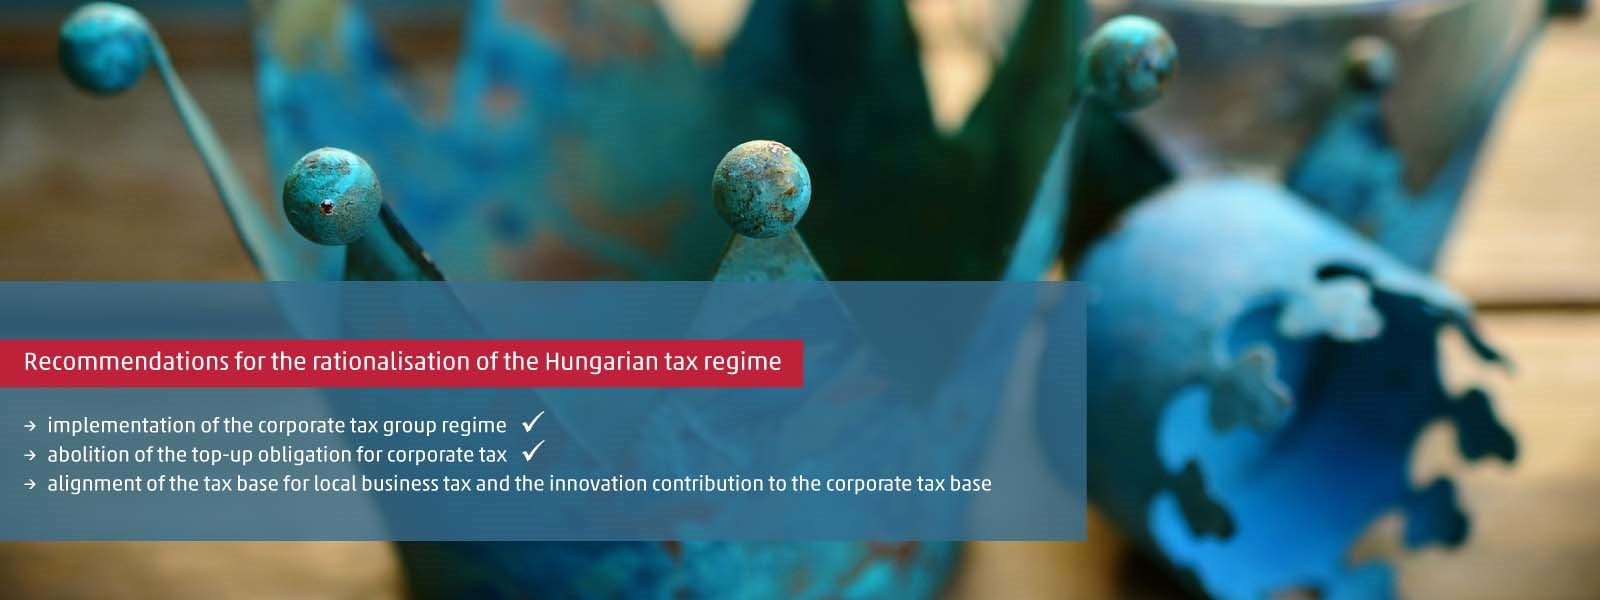 Three wishes regarding rationalisation of the Hungarian tax regime